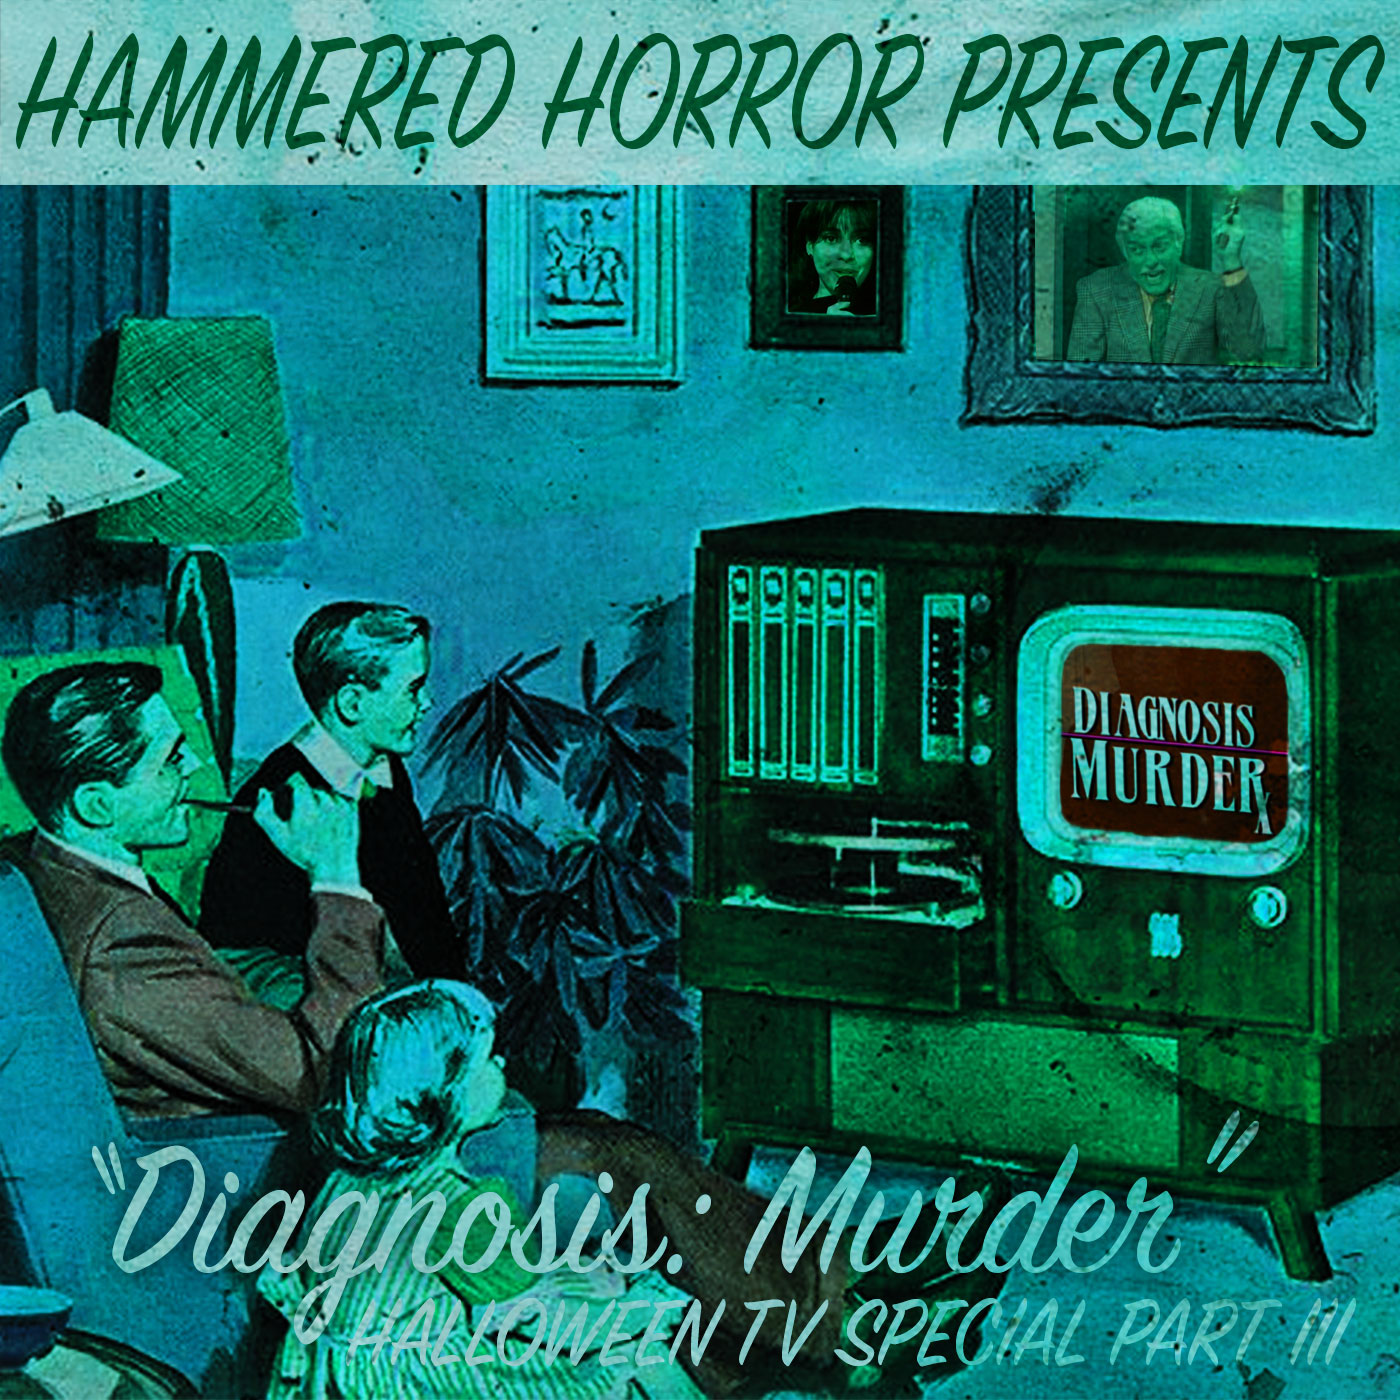 Hammered Horror 39: Diagnosis: Murder